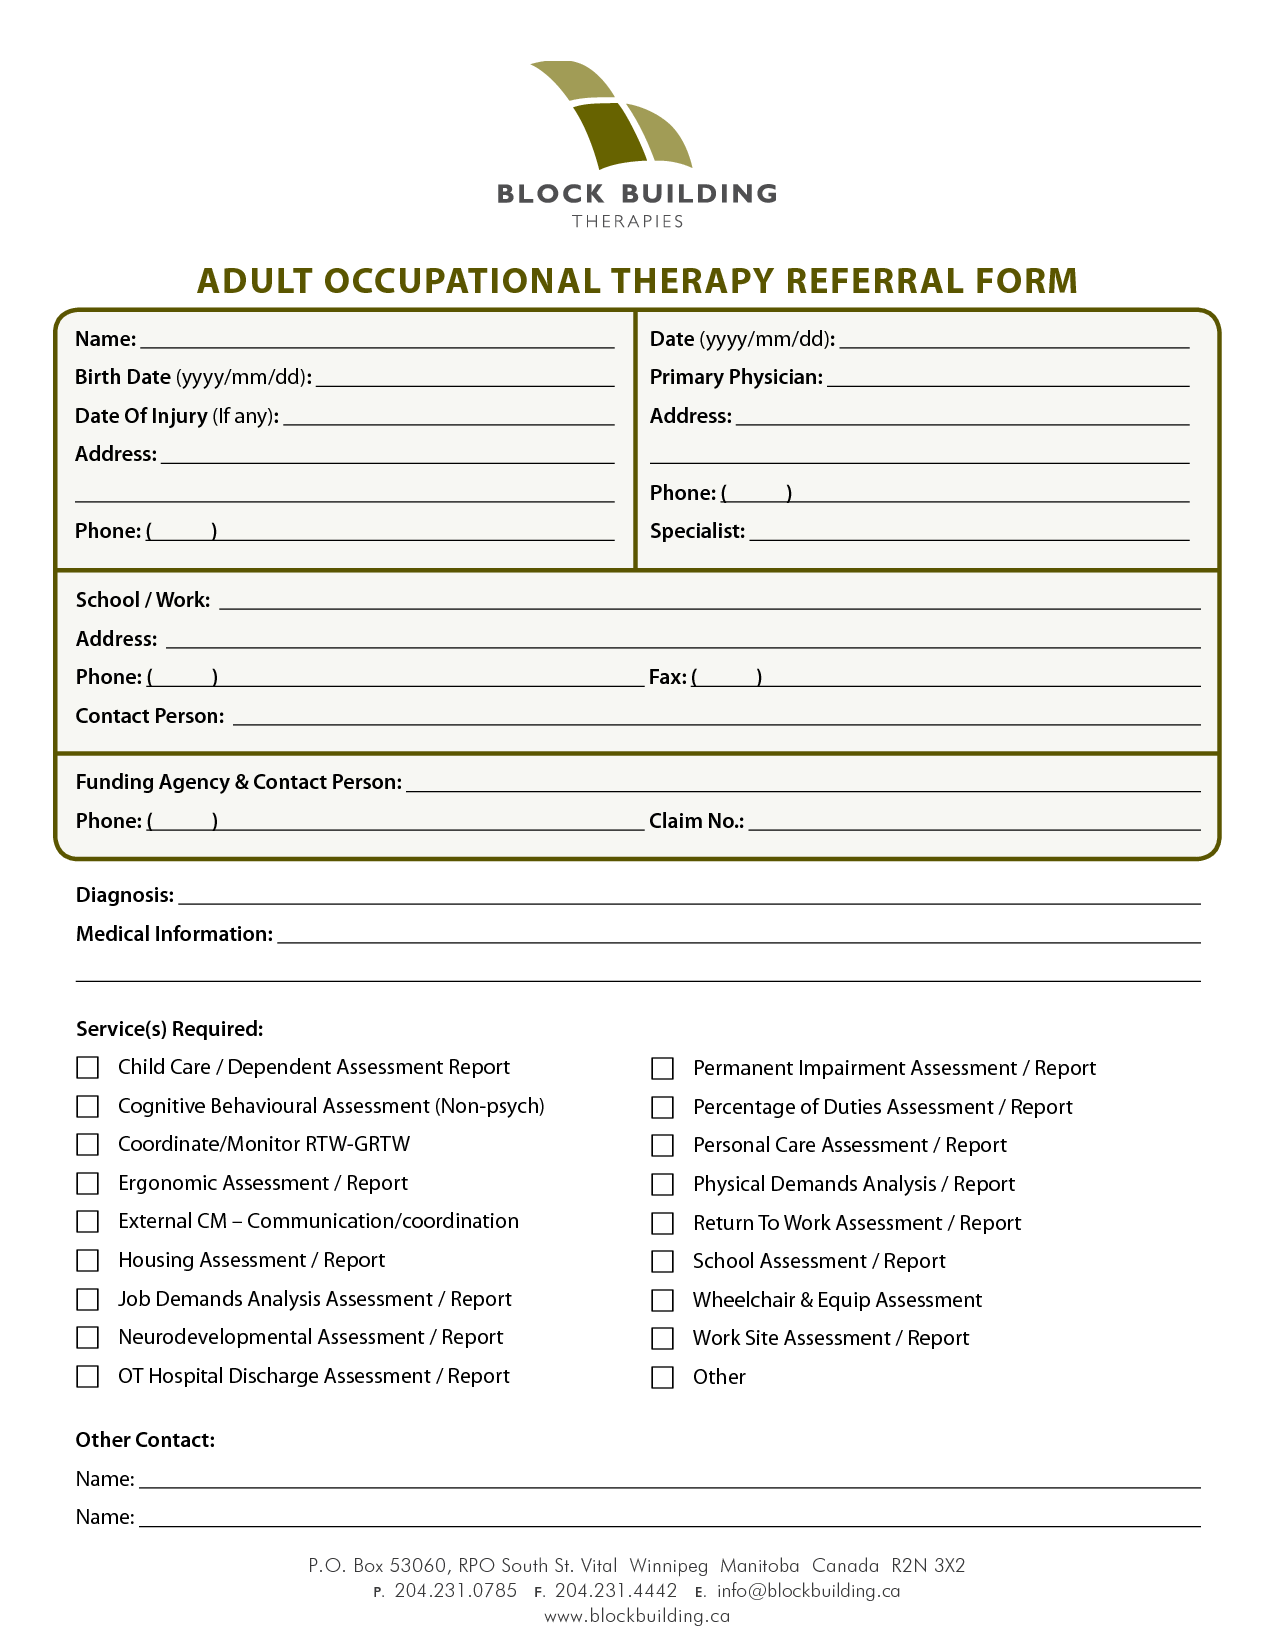 tenncare occupational therapy templates adult occupational therapy referral form pdf